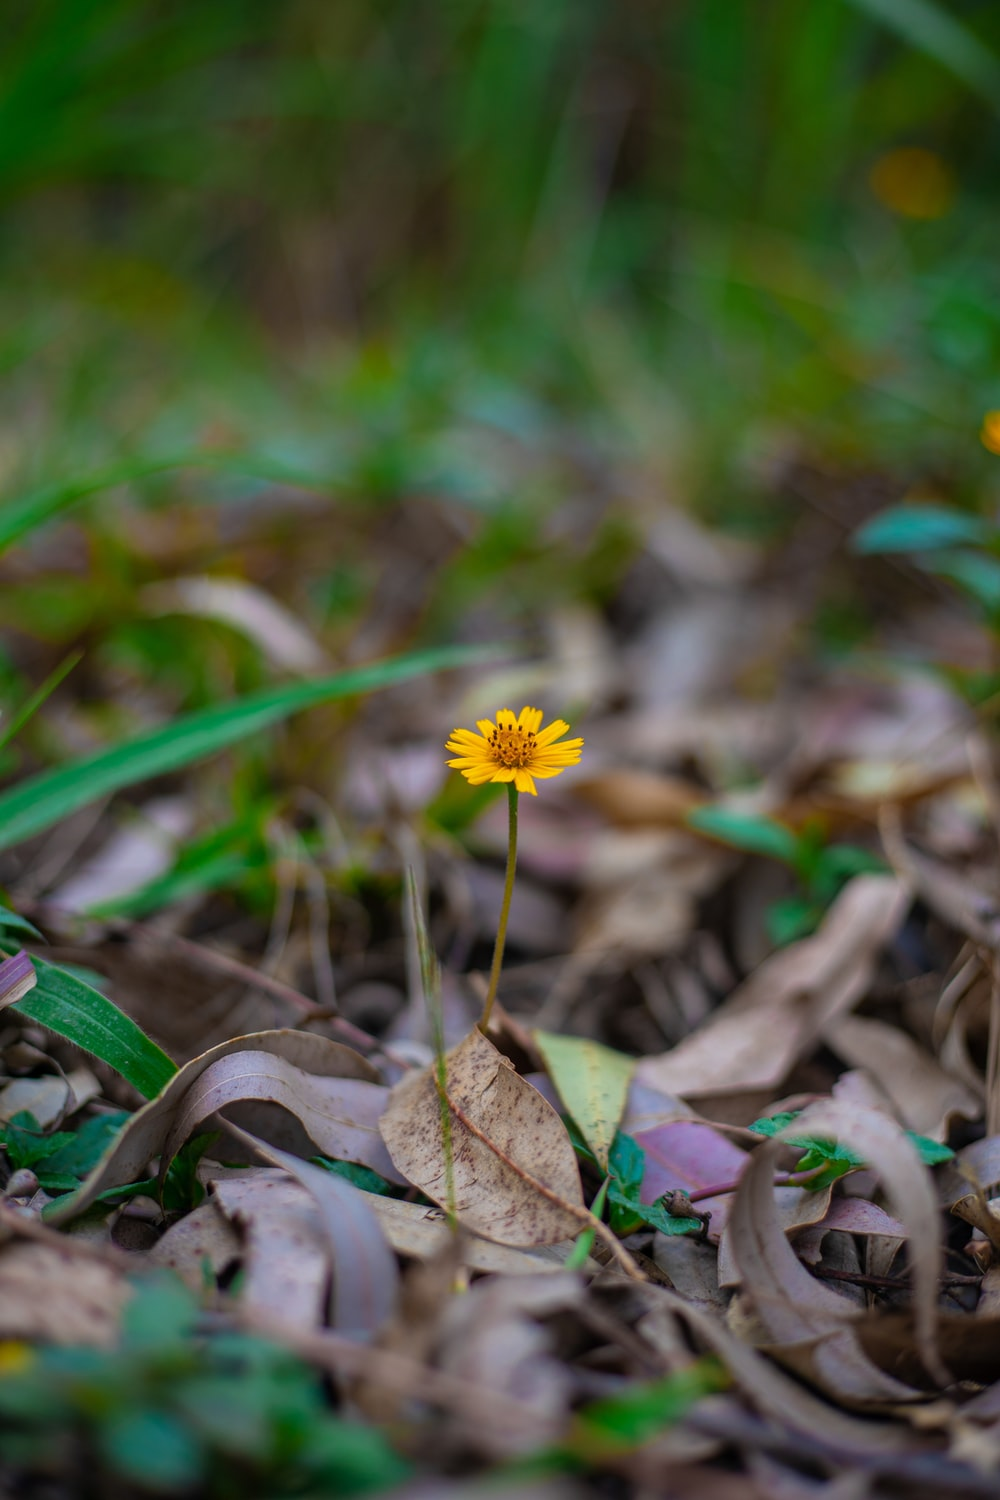 yellow flower on brown dried leaves